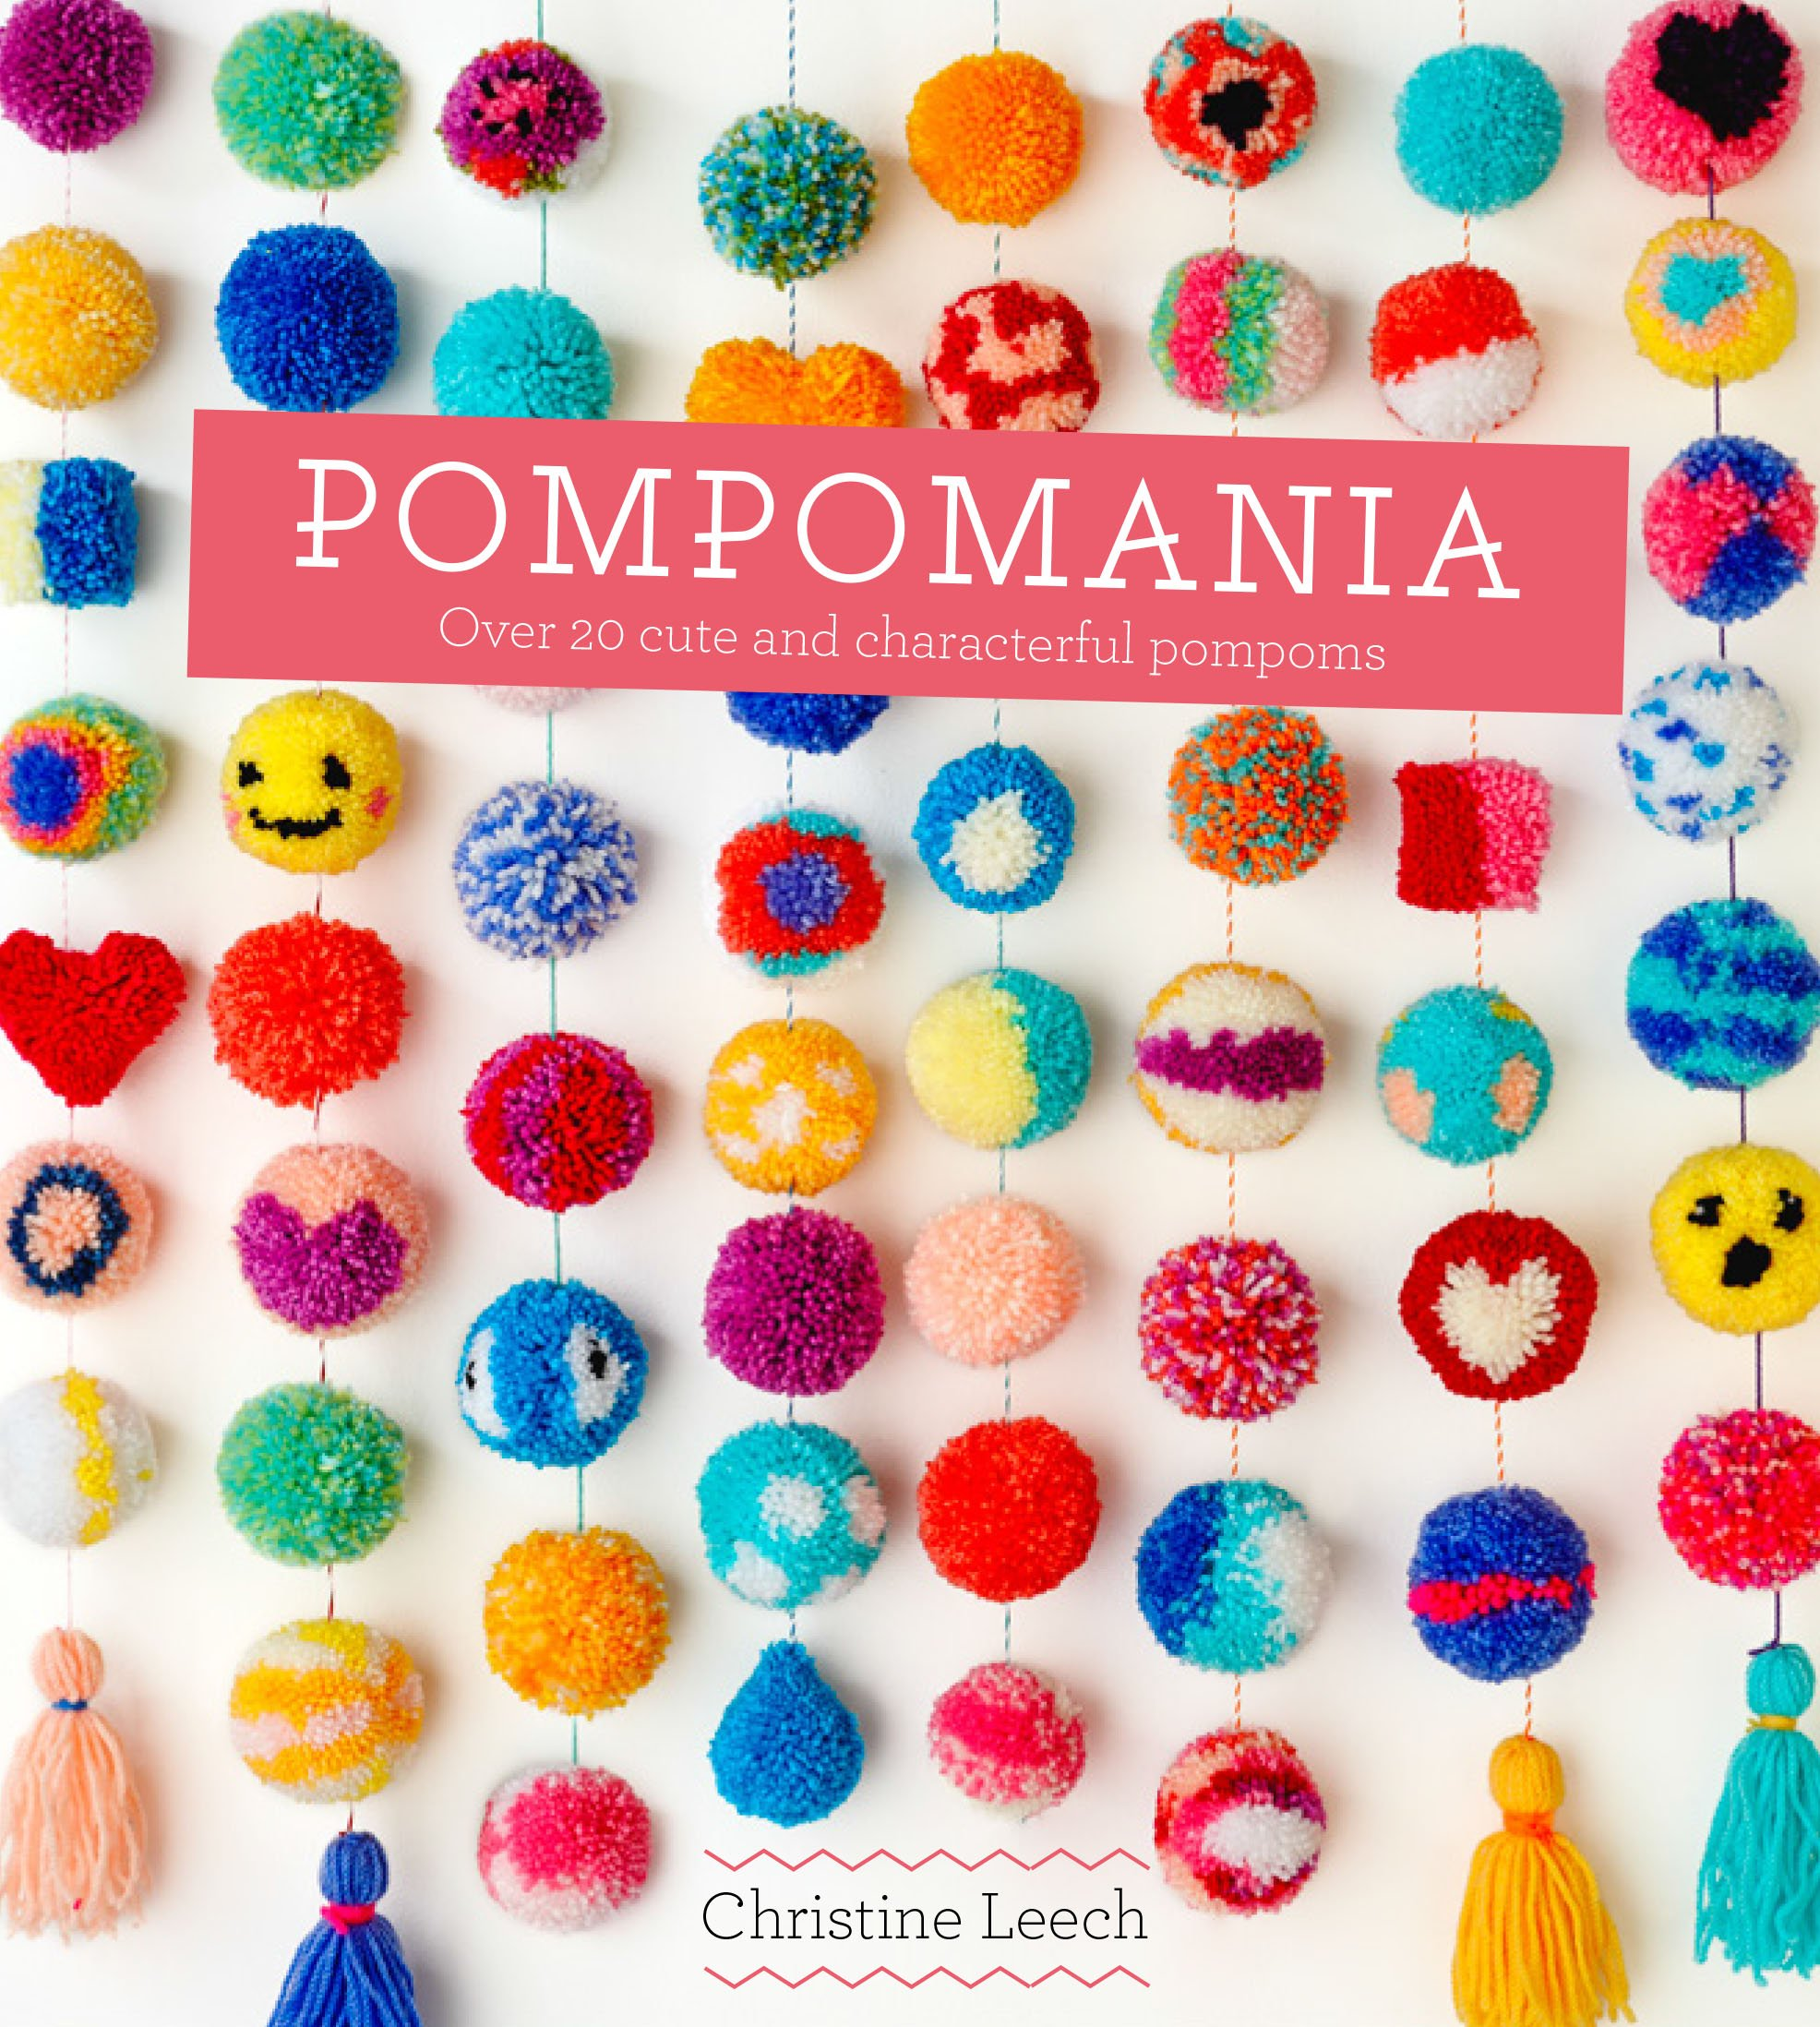 Pompomania: How to Make Over 20 Cute and Characterful Pompoms